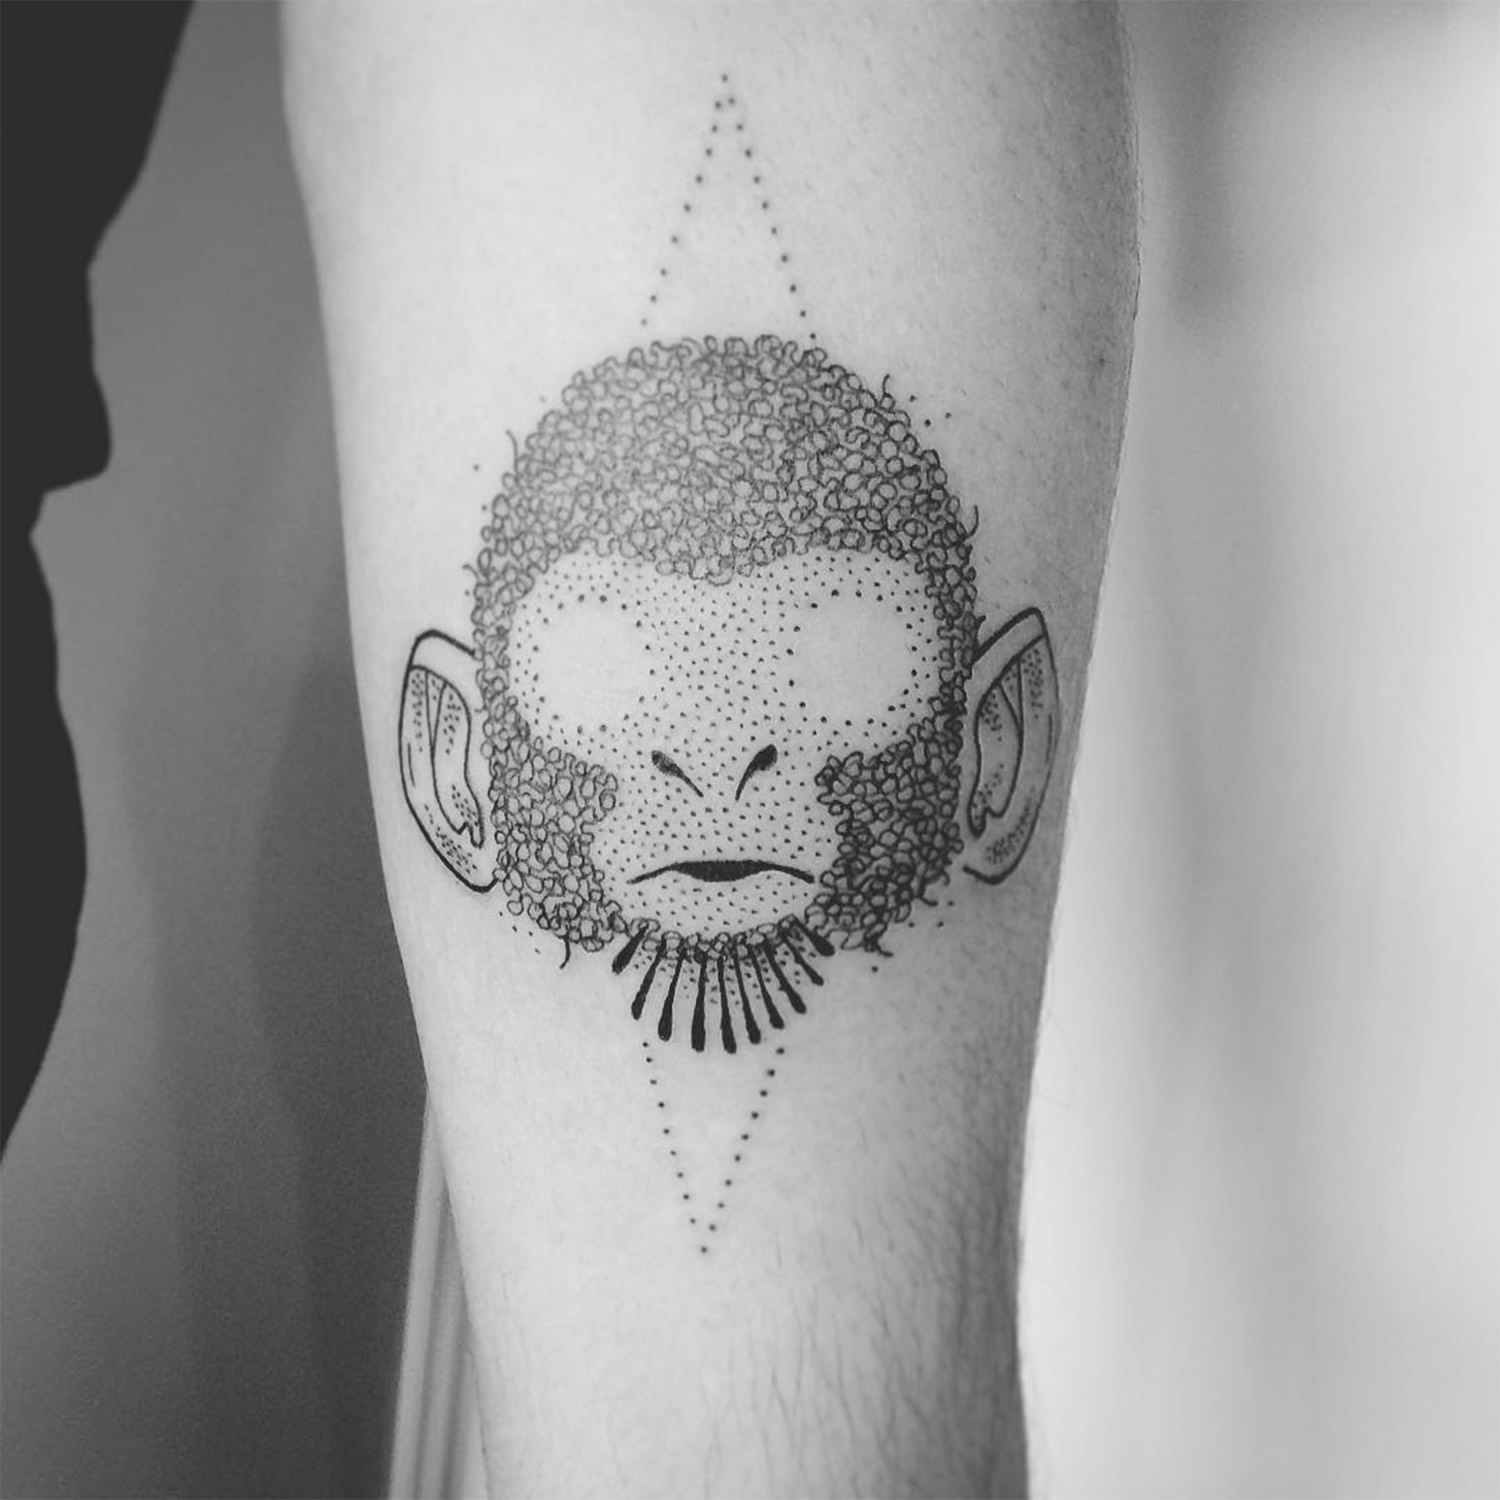 blind monkey, dotwork tattoo